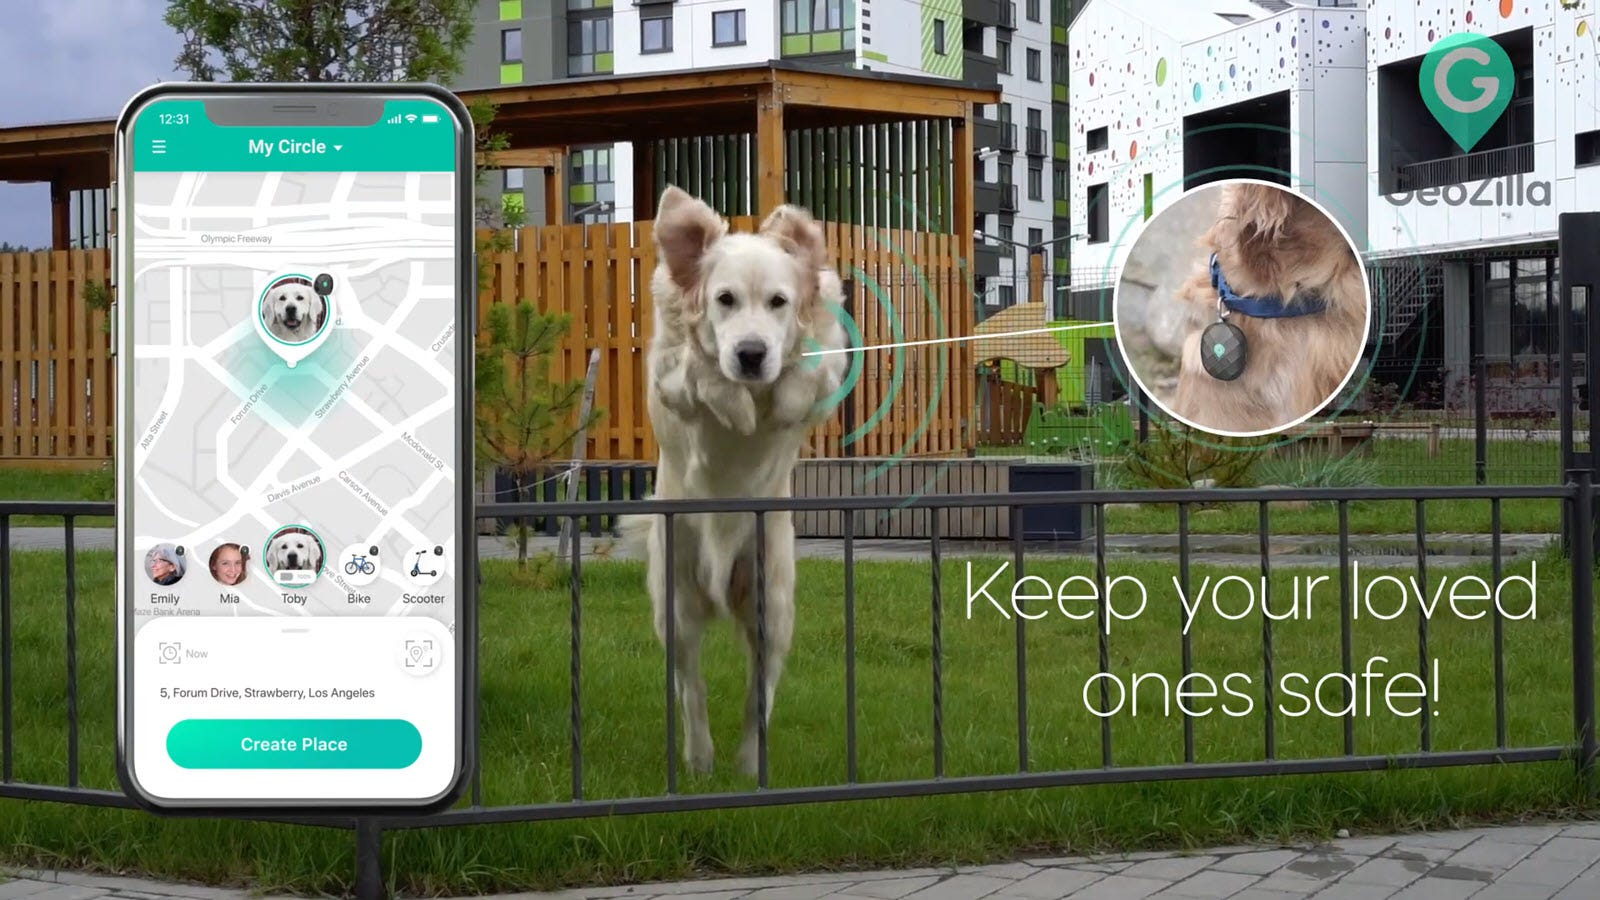 A dog hopping a fence while wearing a GPS tracker.